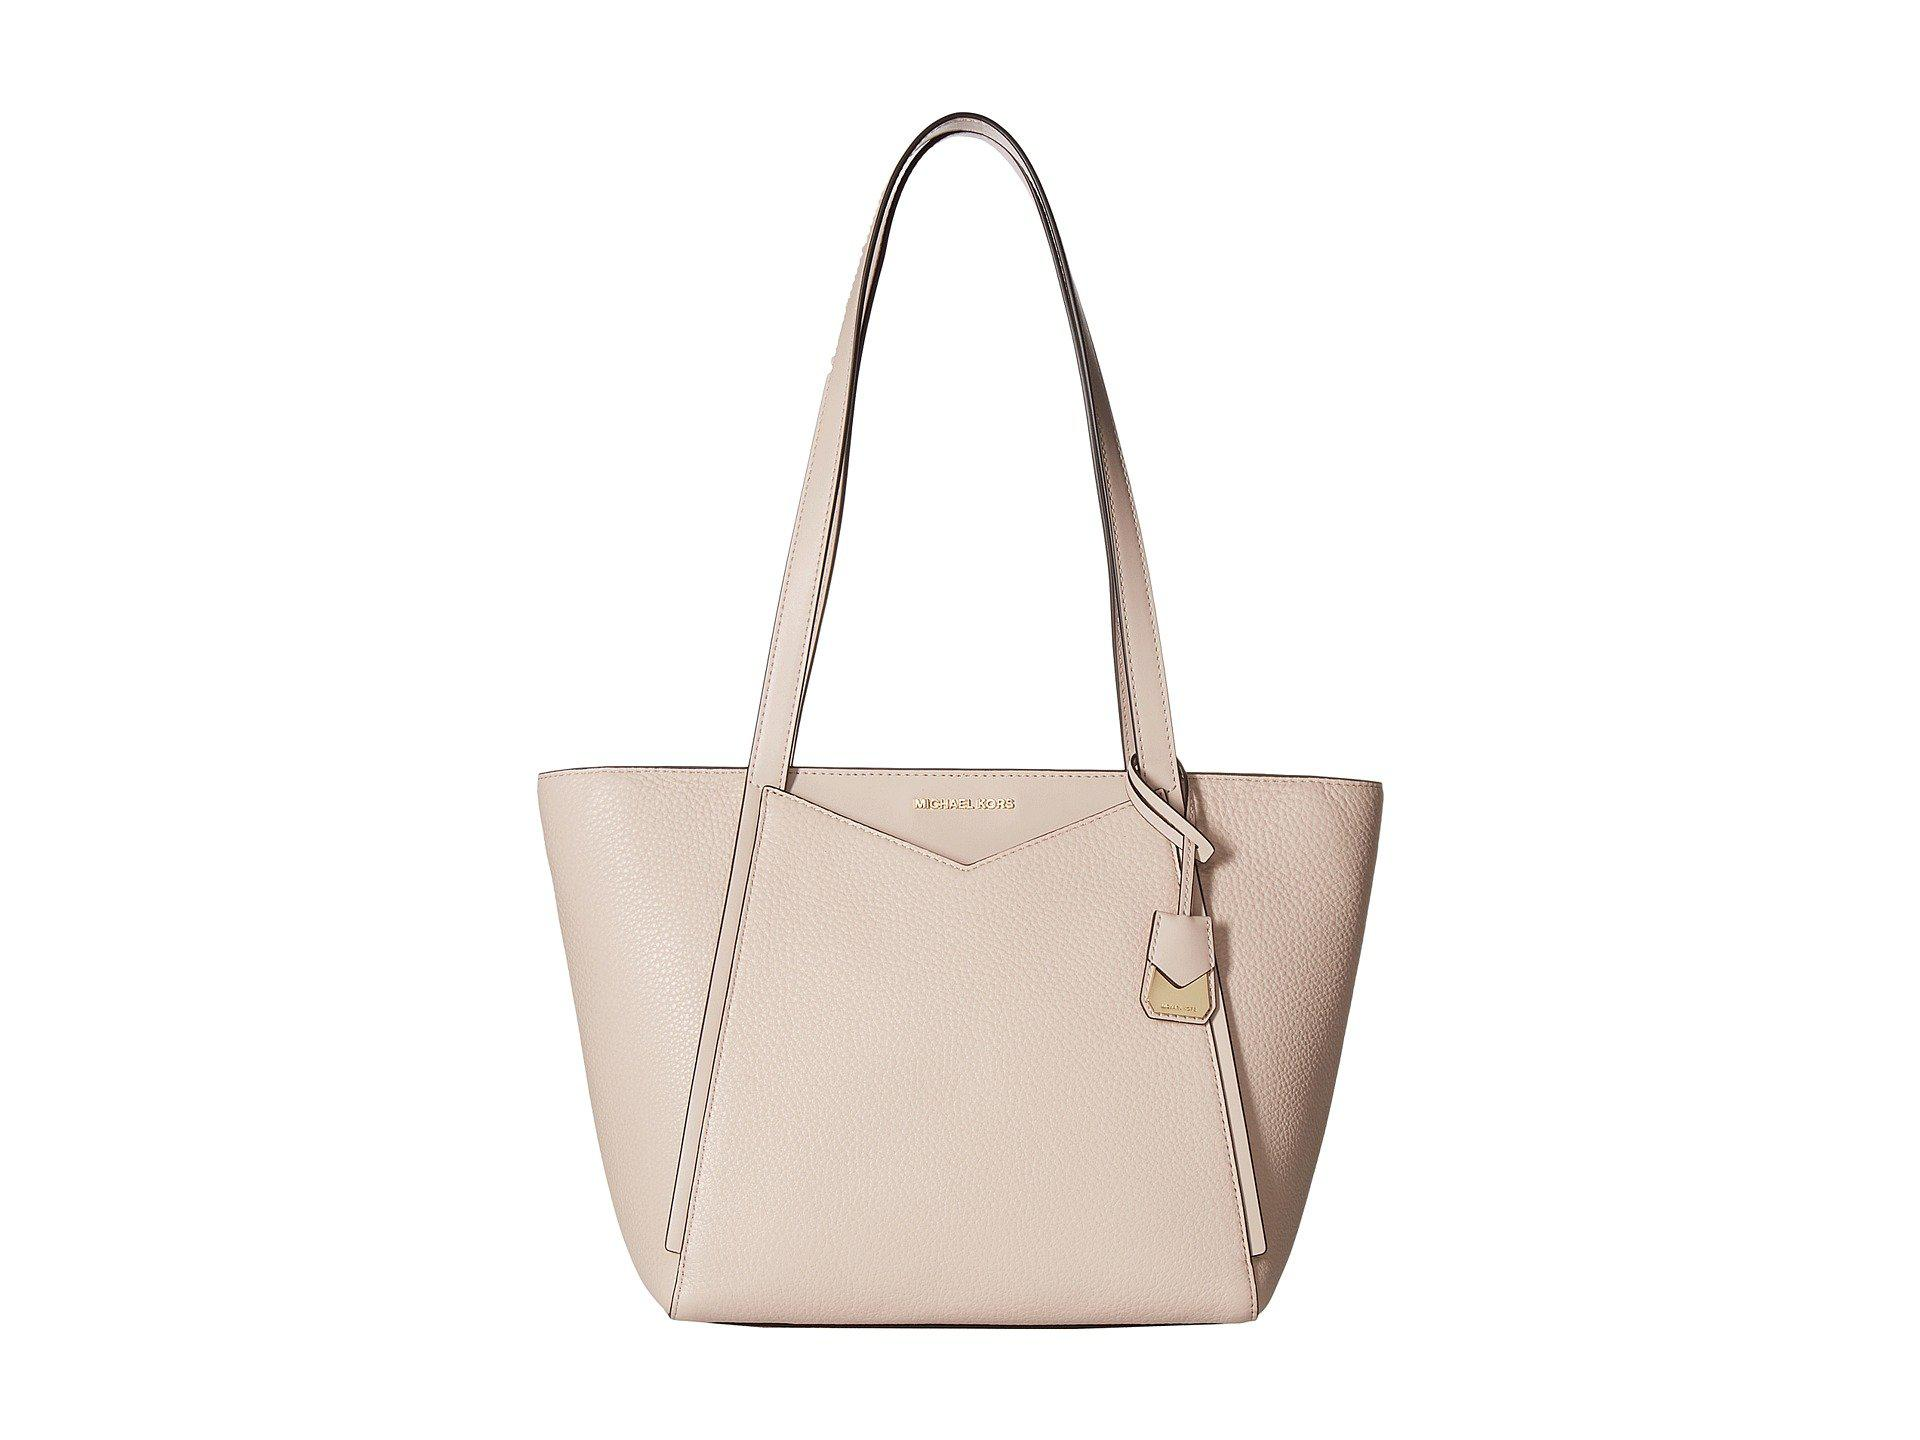 207fcc21336a Lyst - MICHAEL Michael Kors Whitney Small Top Zip Tote in Pink ...